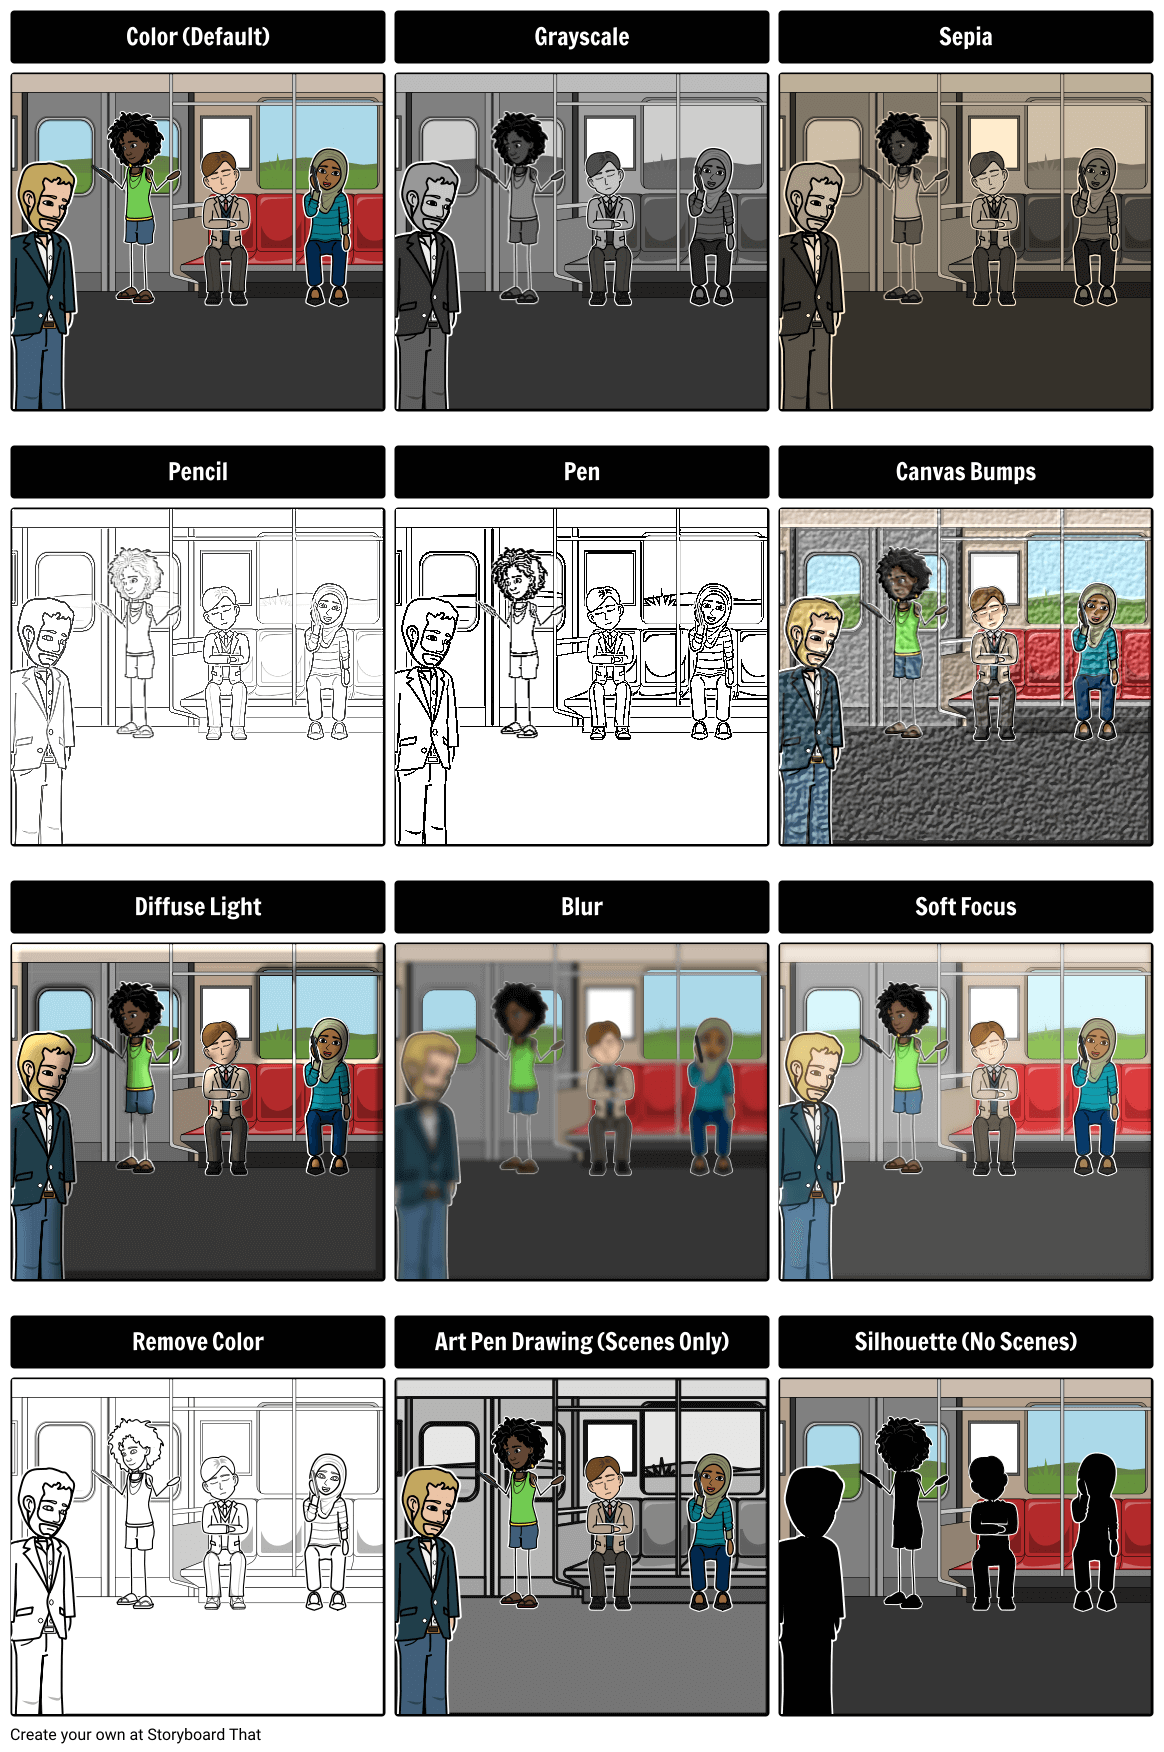 Using filters in storyboard software